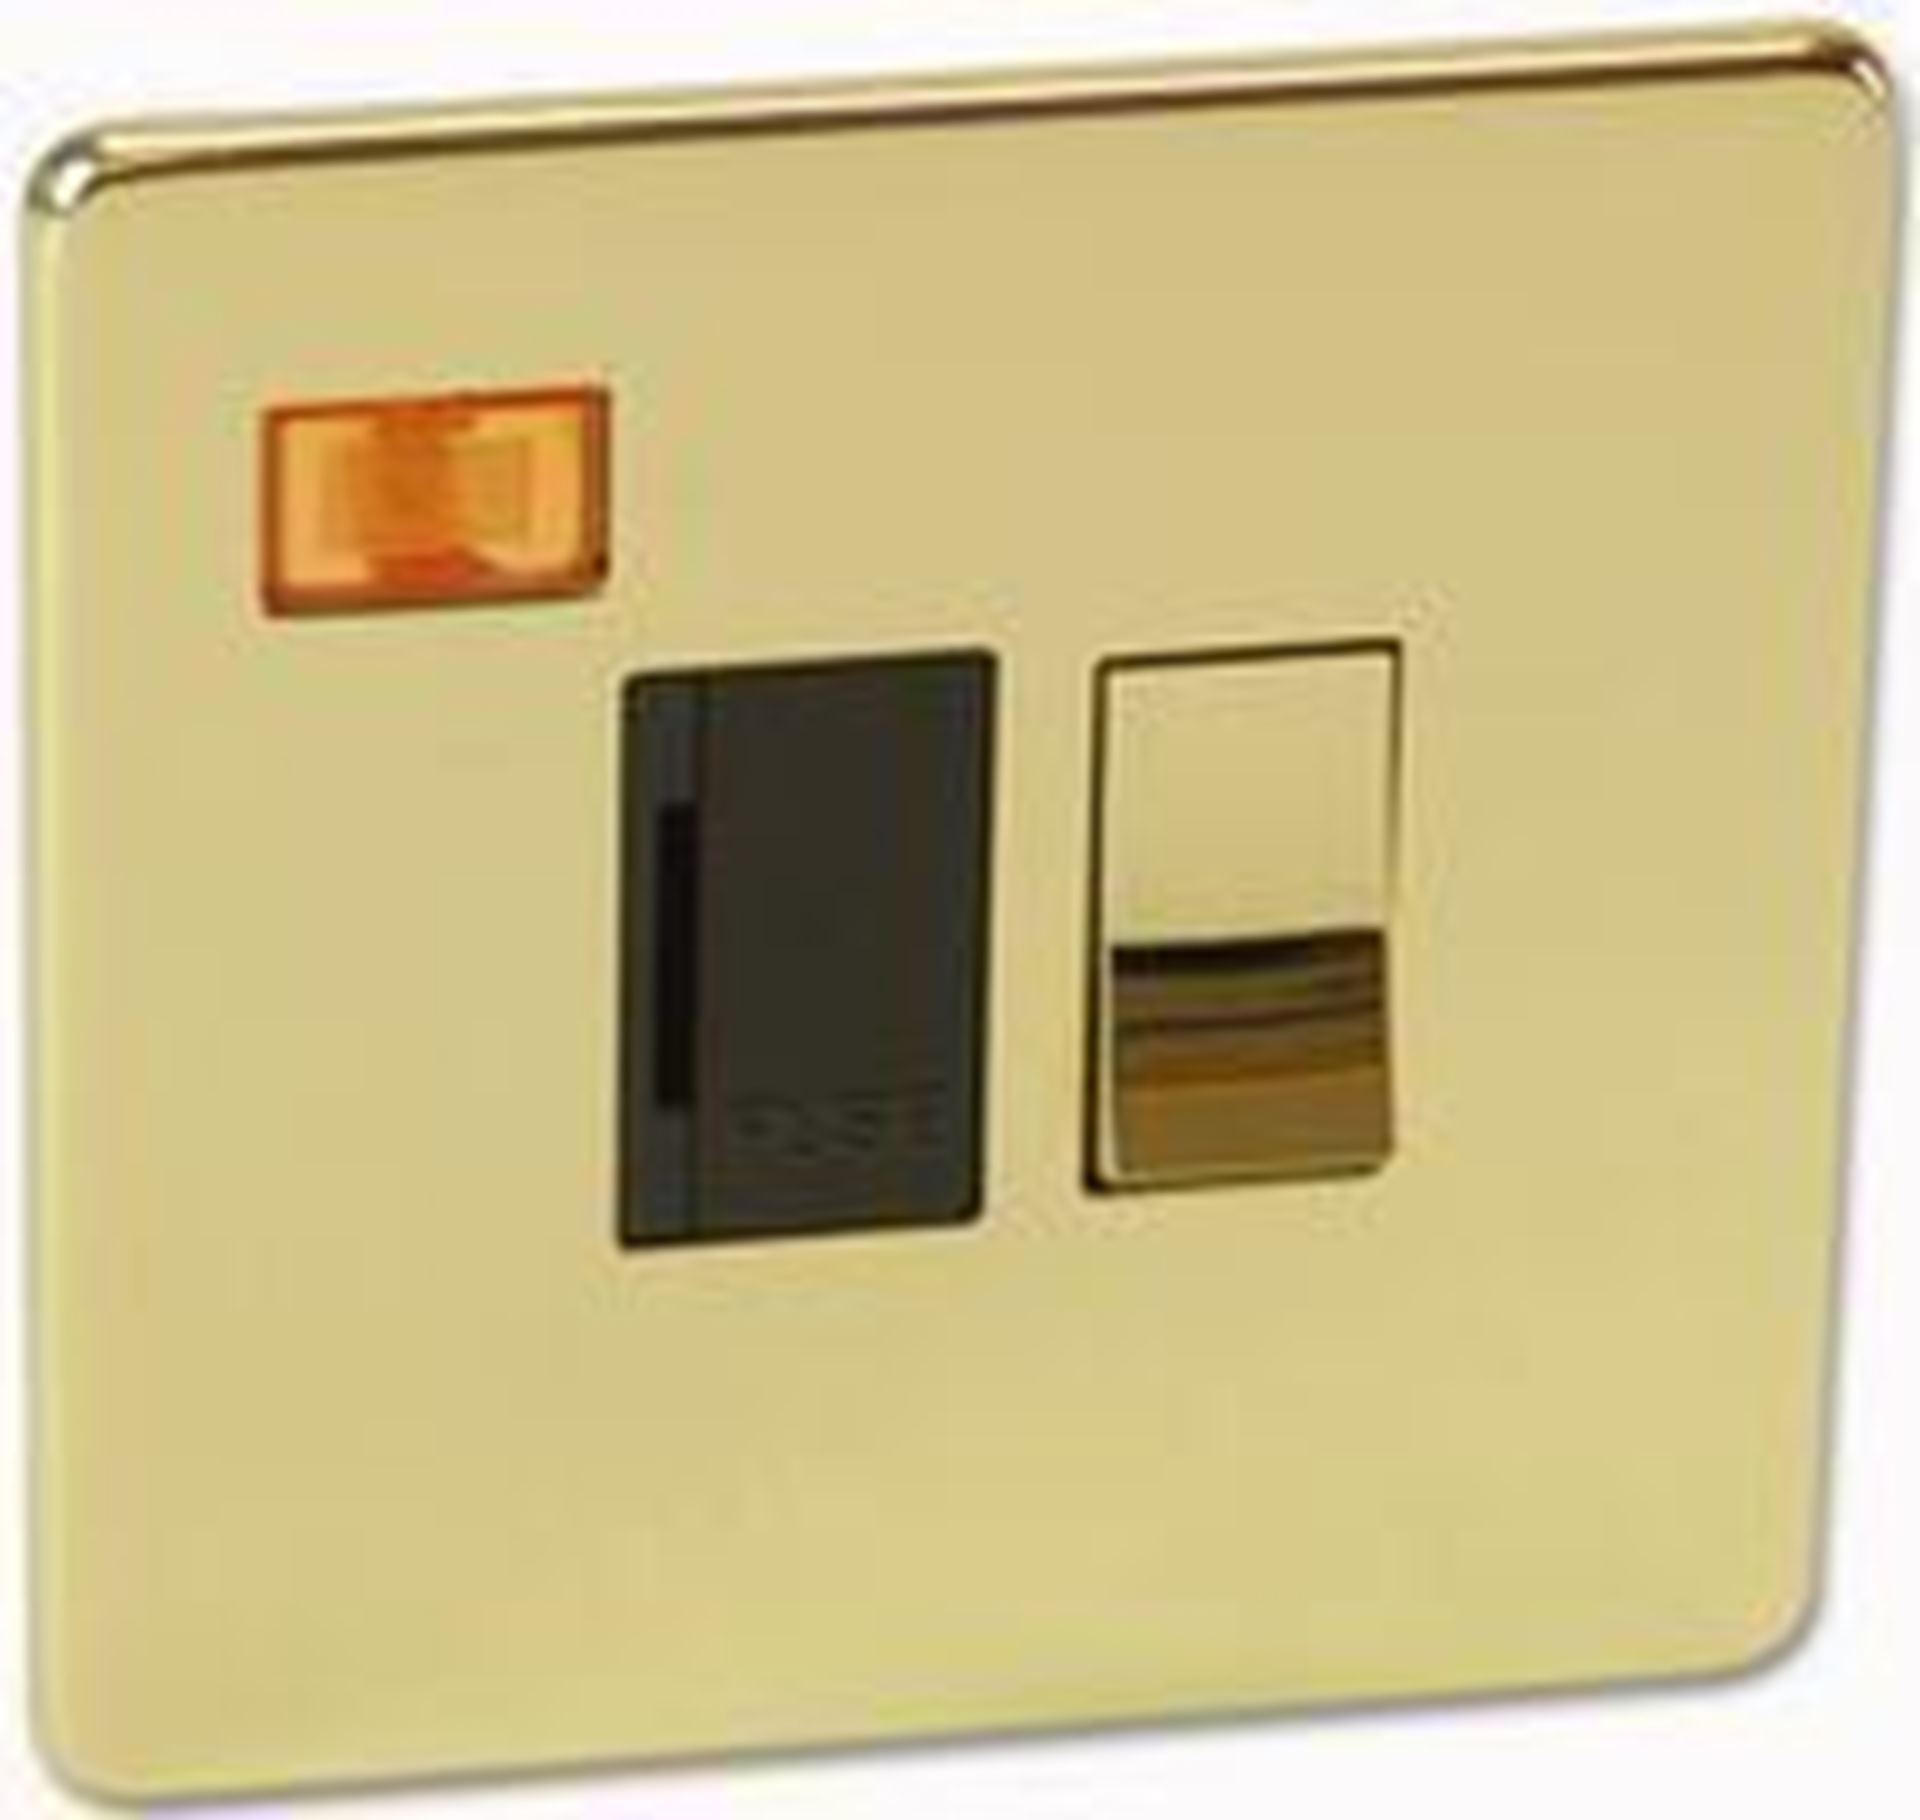 Crabtree Platinum 7832/3PB Polished Brass Fuse Spur with NEON